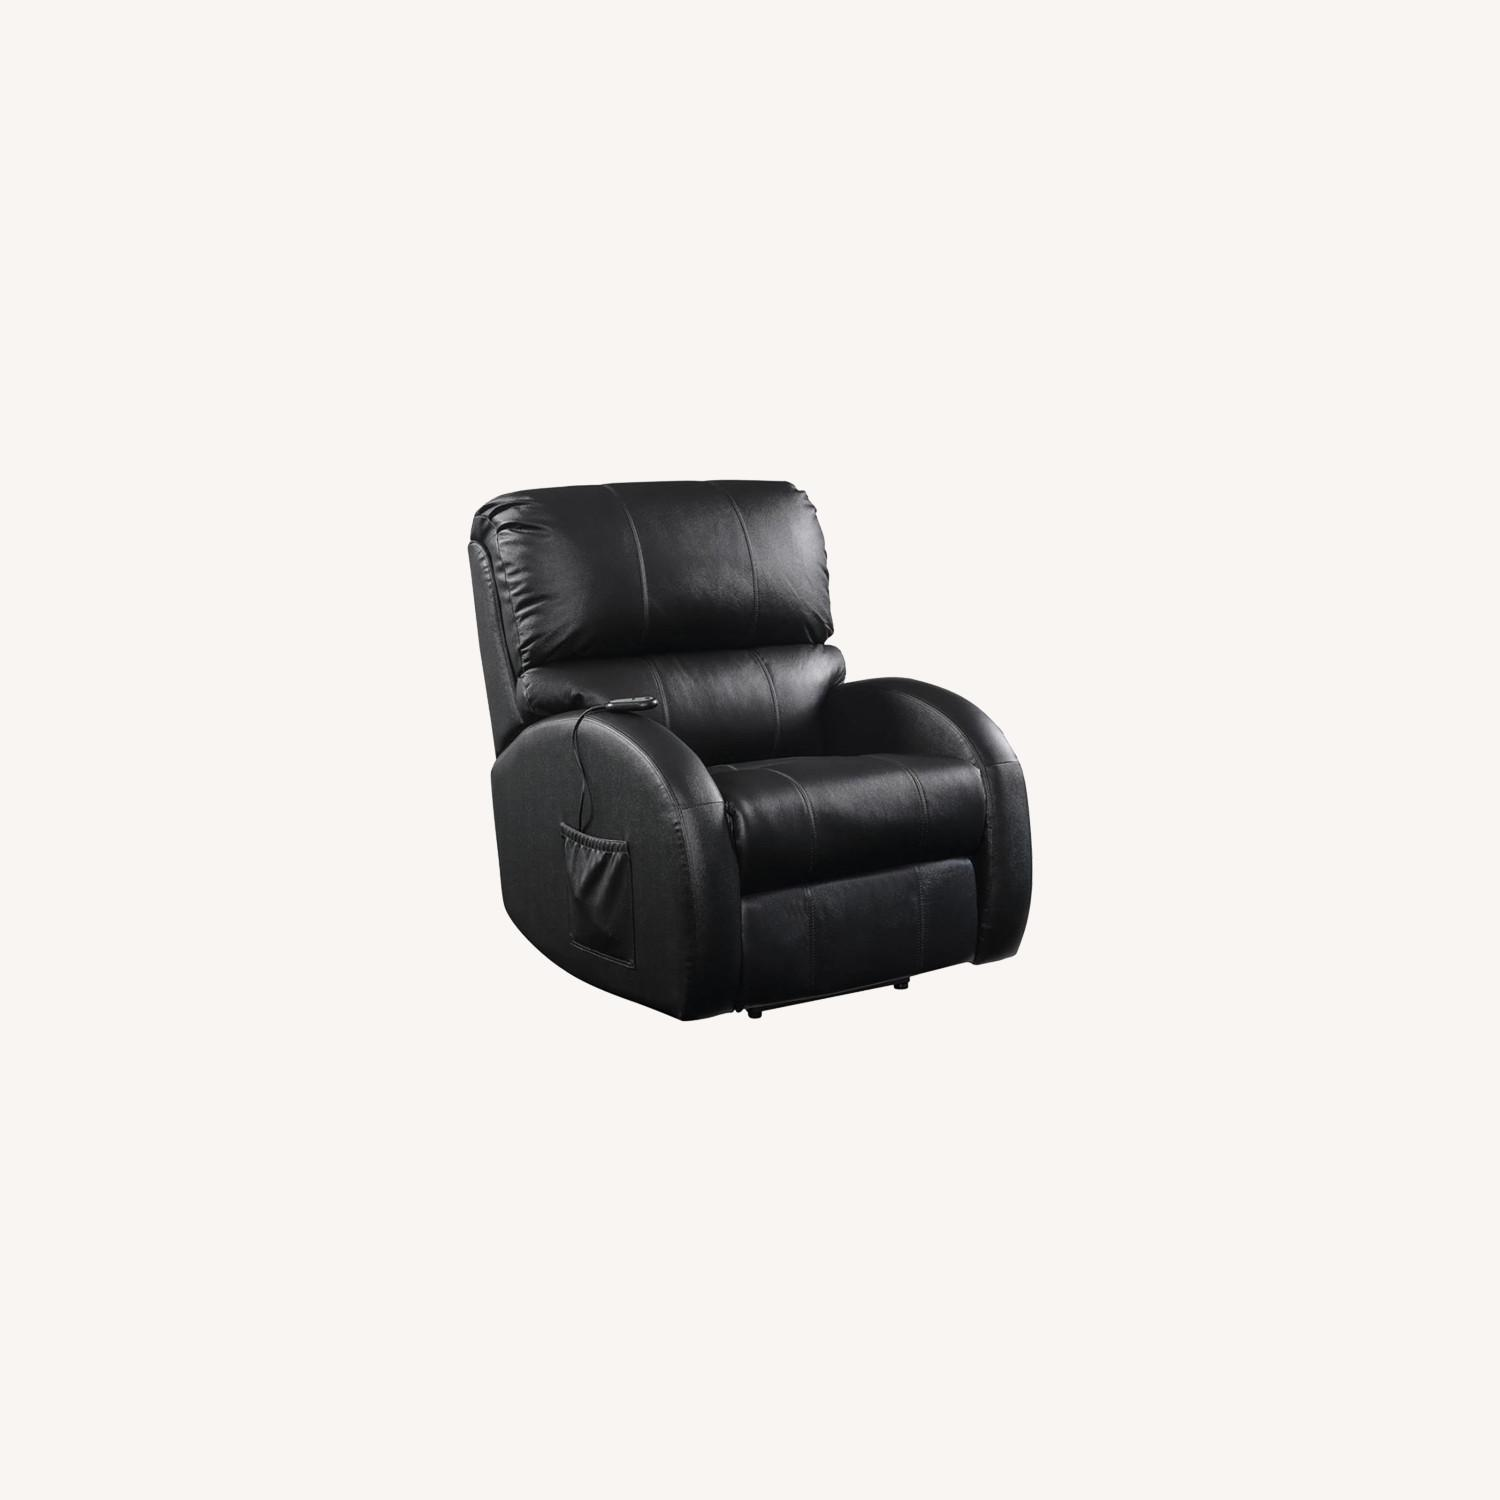 Power Lift Recliner In Black Top Grain Leather - image-10